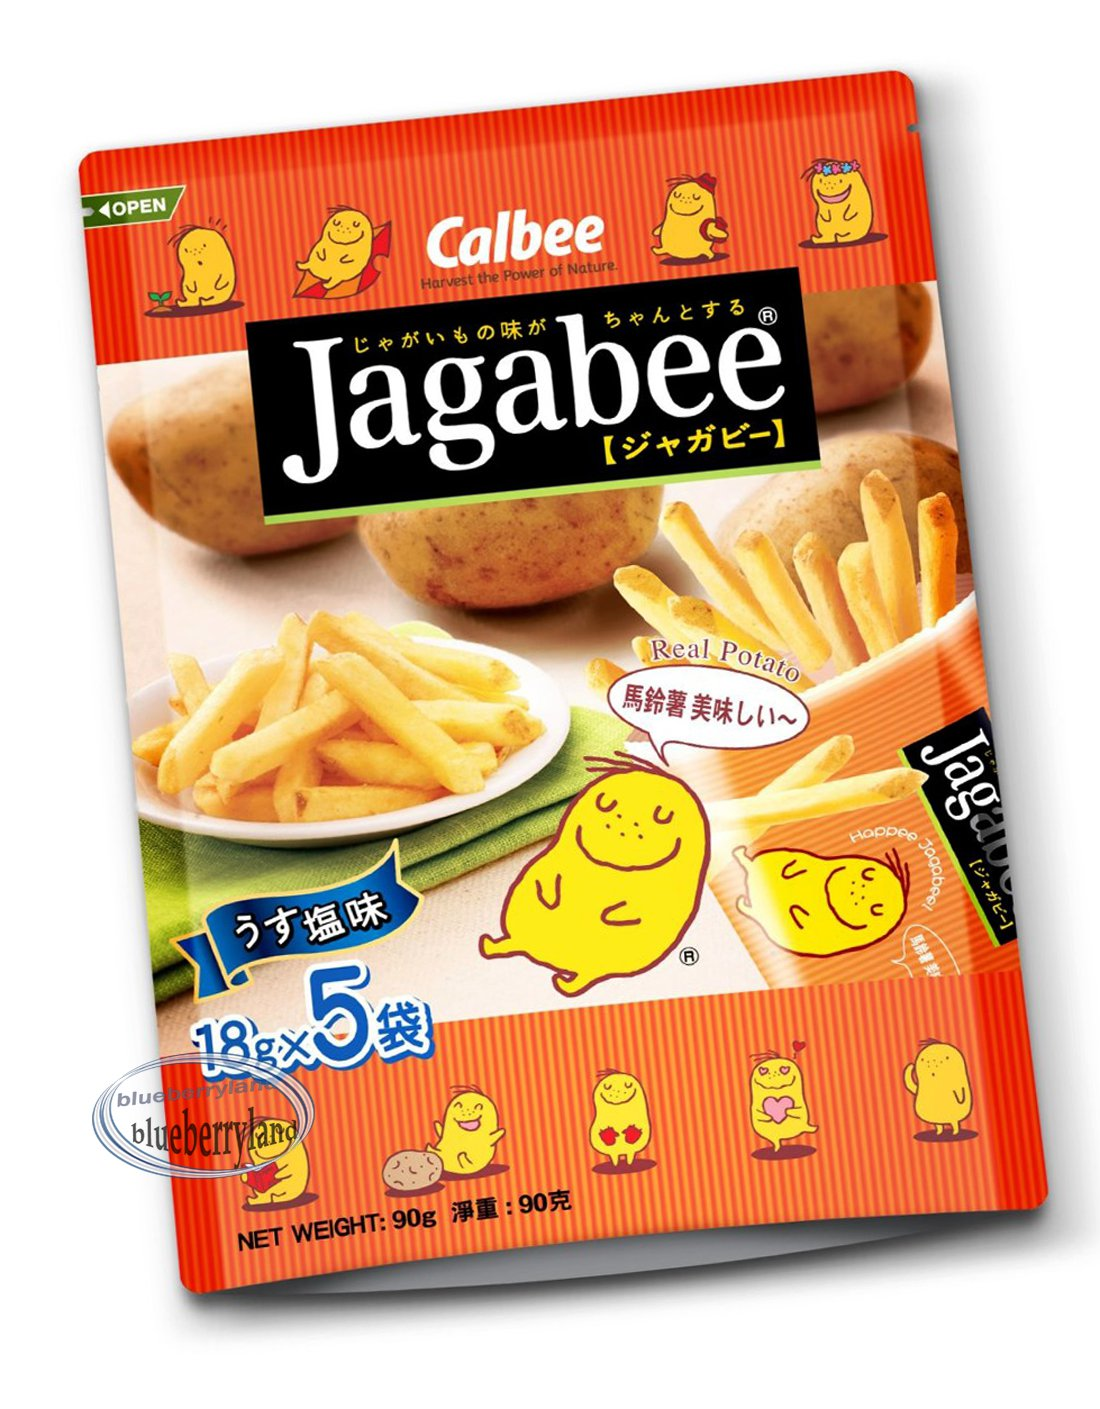 Calbee Jagabee Potato Stick Snack Parties Tv Snacks Chip